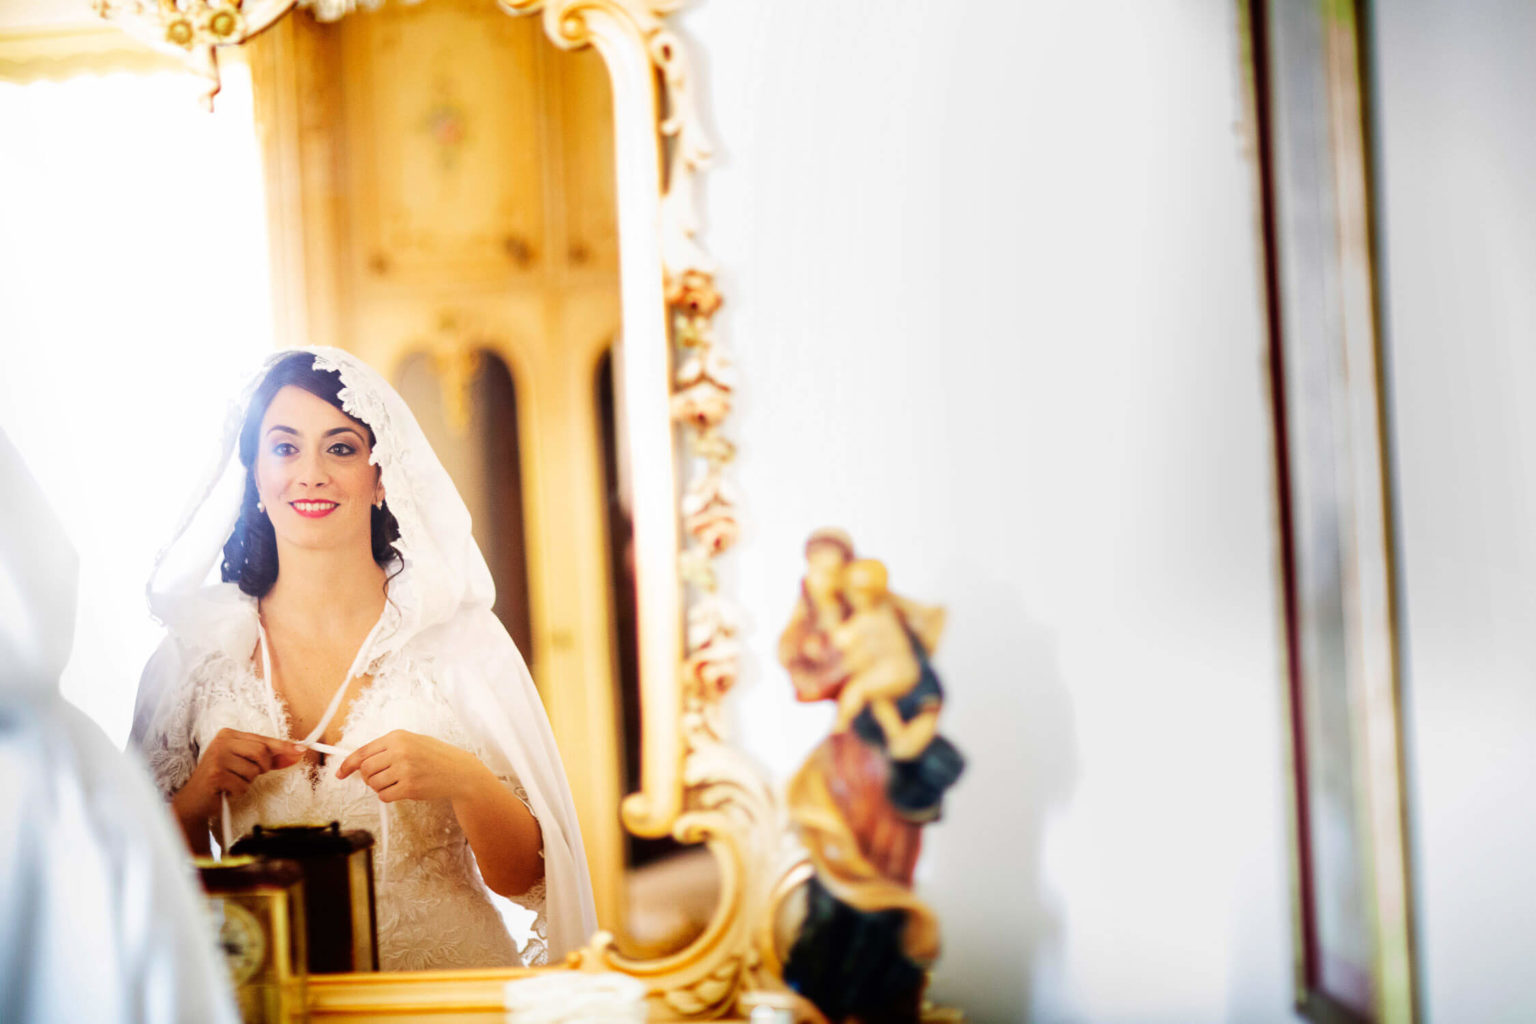 Bride looks at herself in the mirror, photograph by Nino Lombardo